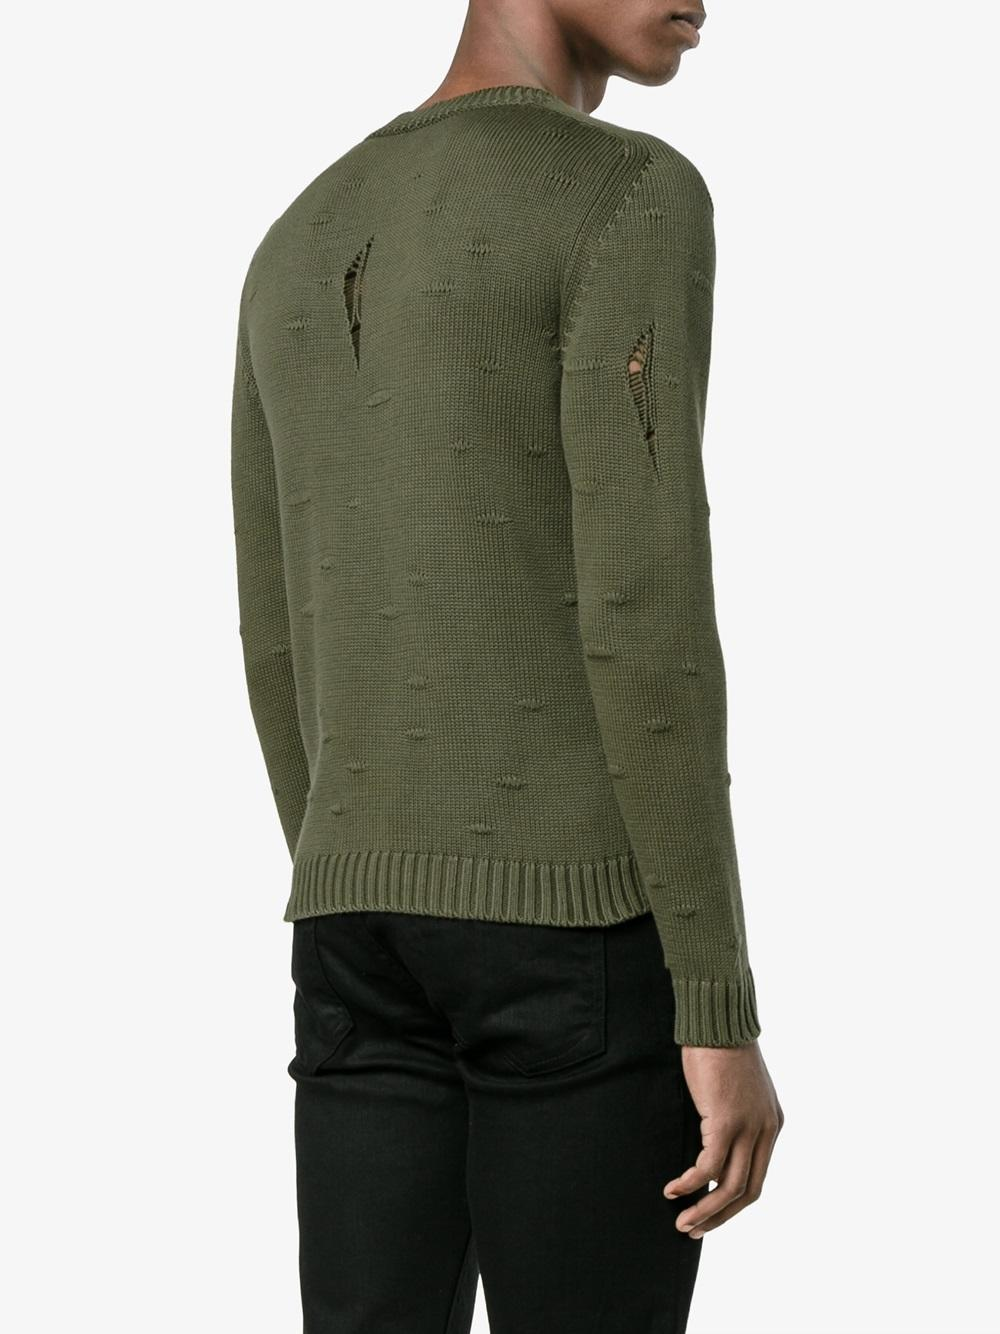 Etro Cotton Distressed Jumper in Green for Men